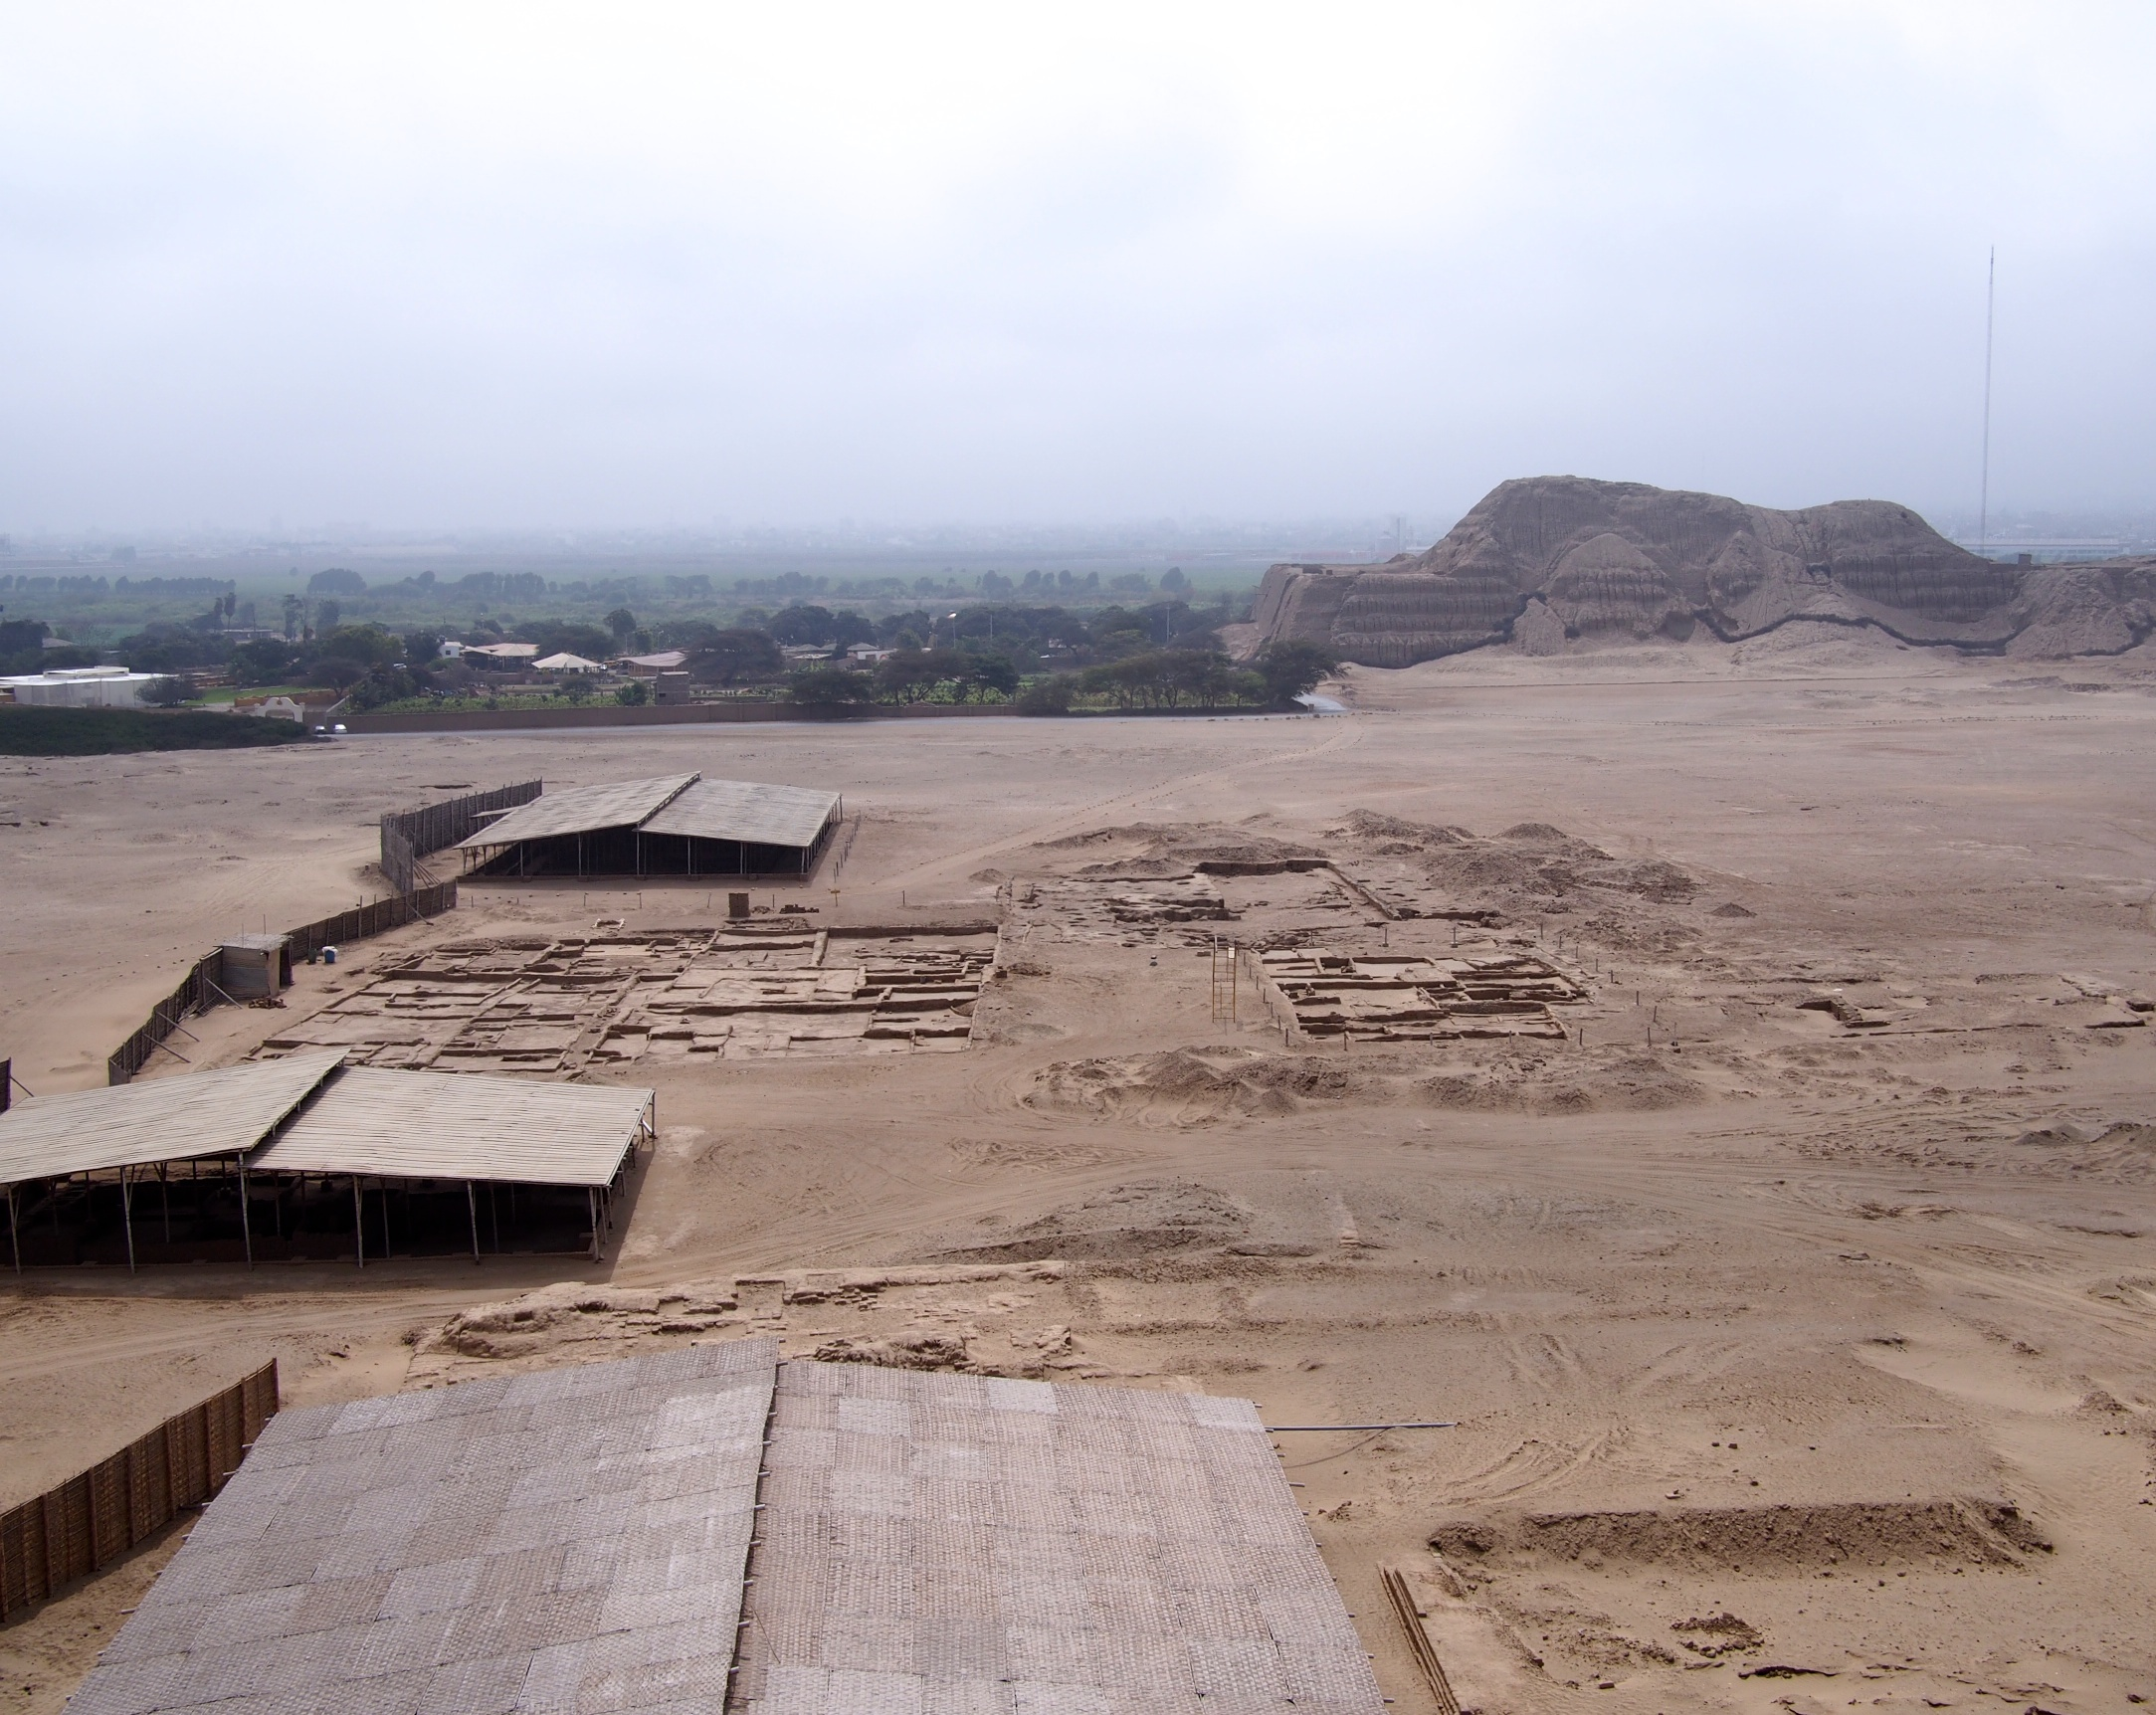 You can see where archeologists are currently digging out the city that once existed